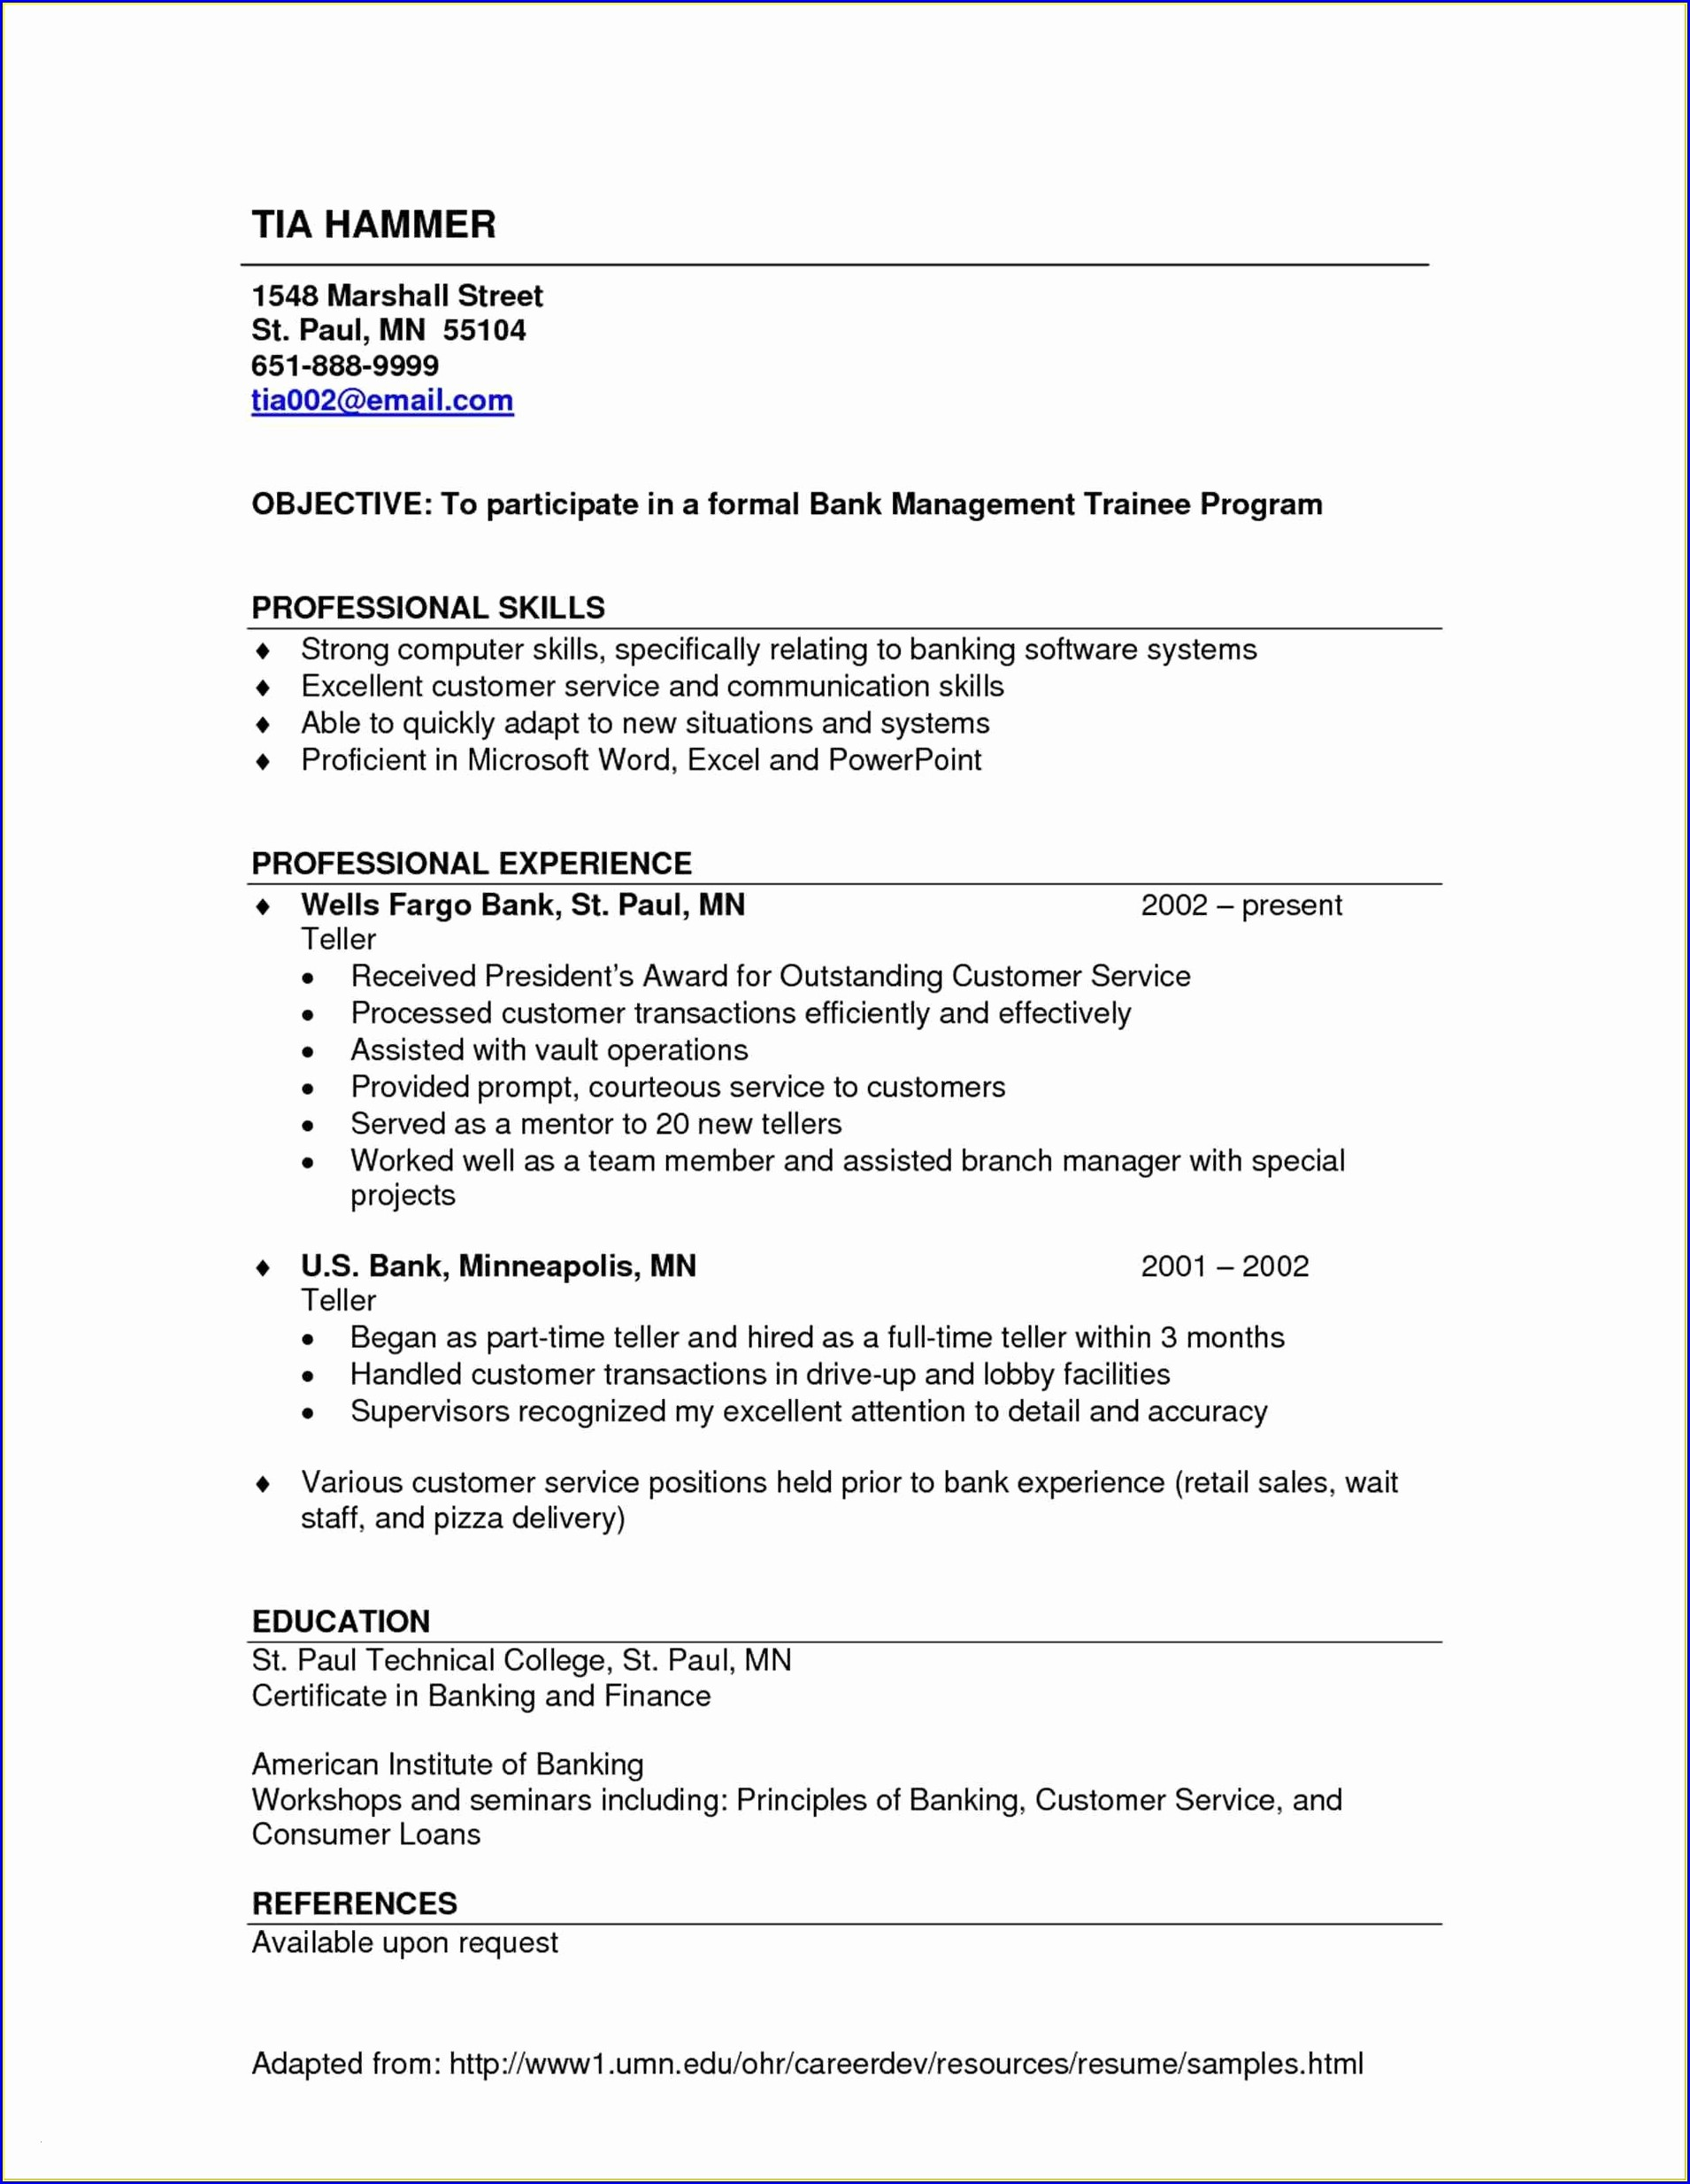 Sample Resume For Banking Experience